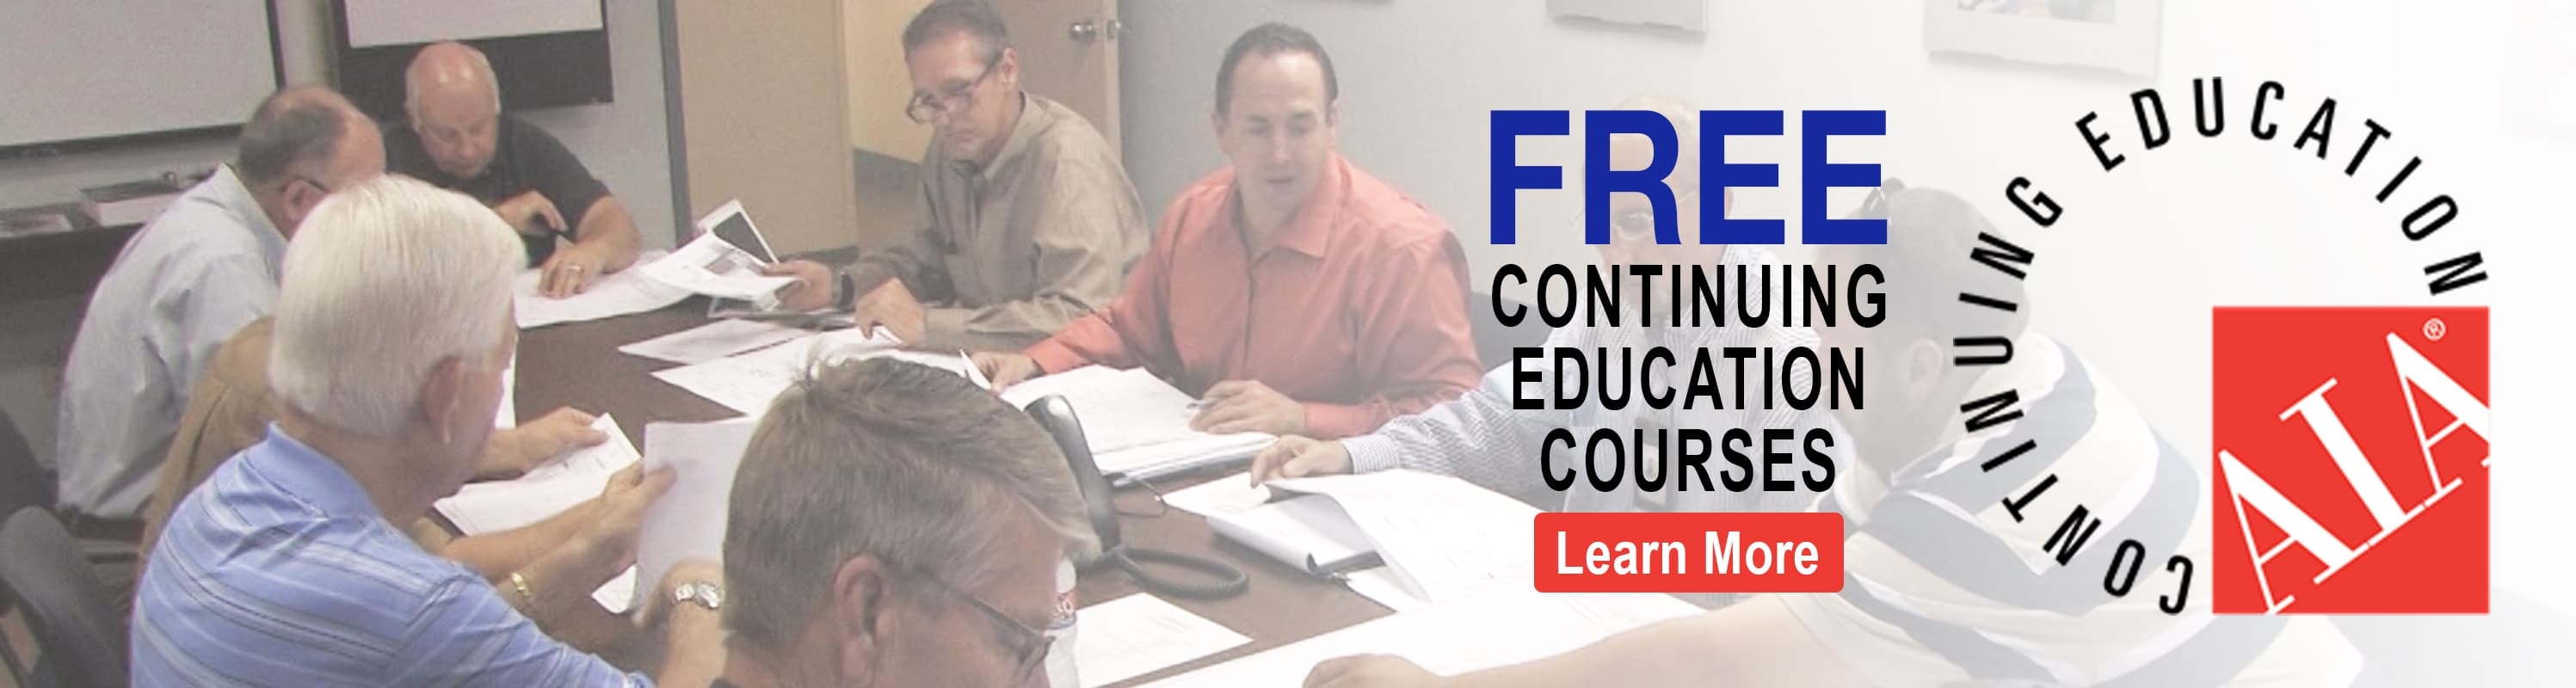 AIA Continuing Education Courses